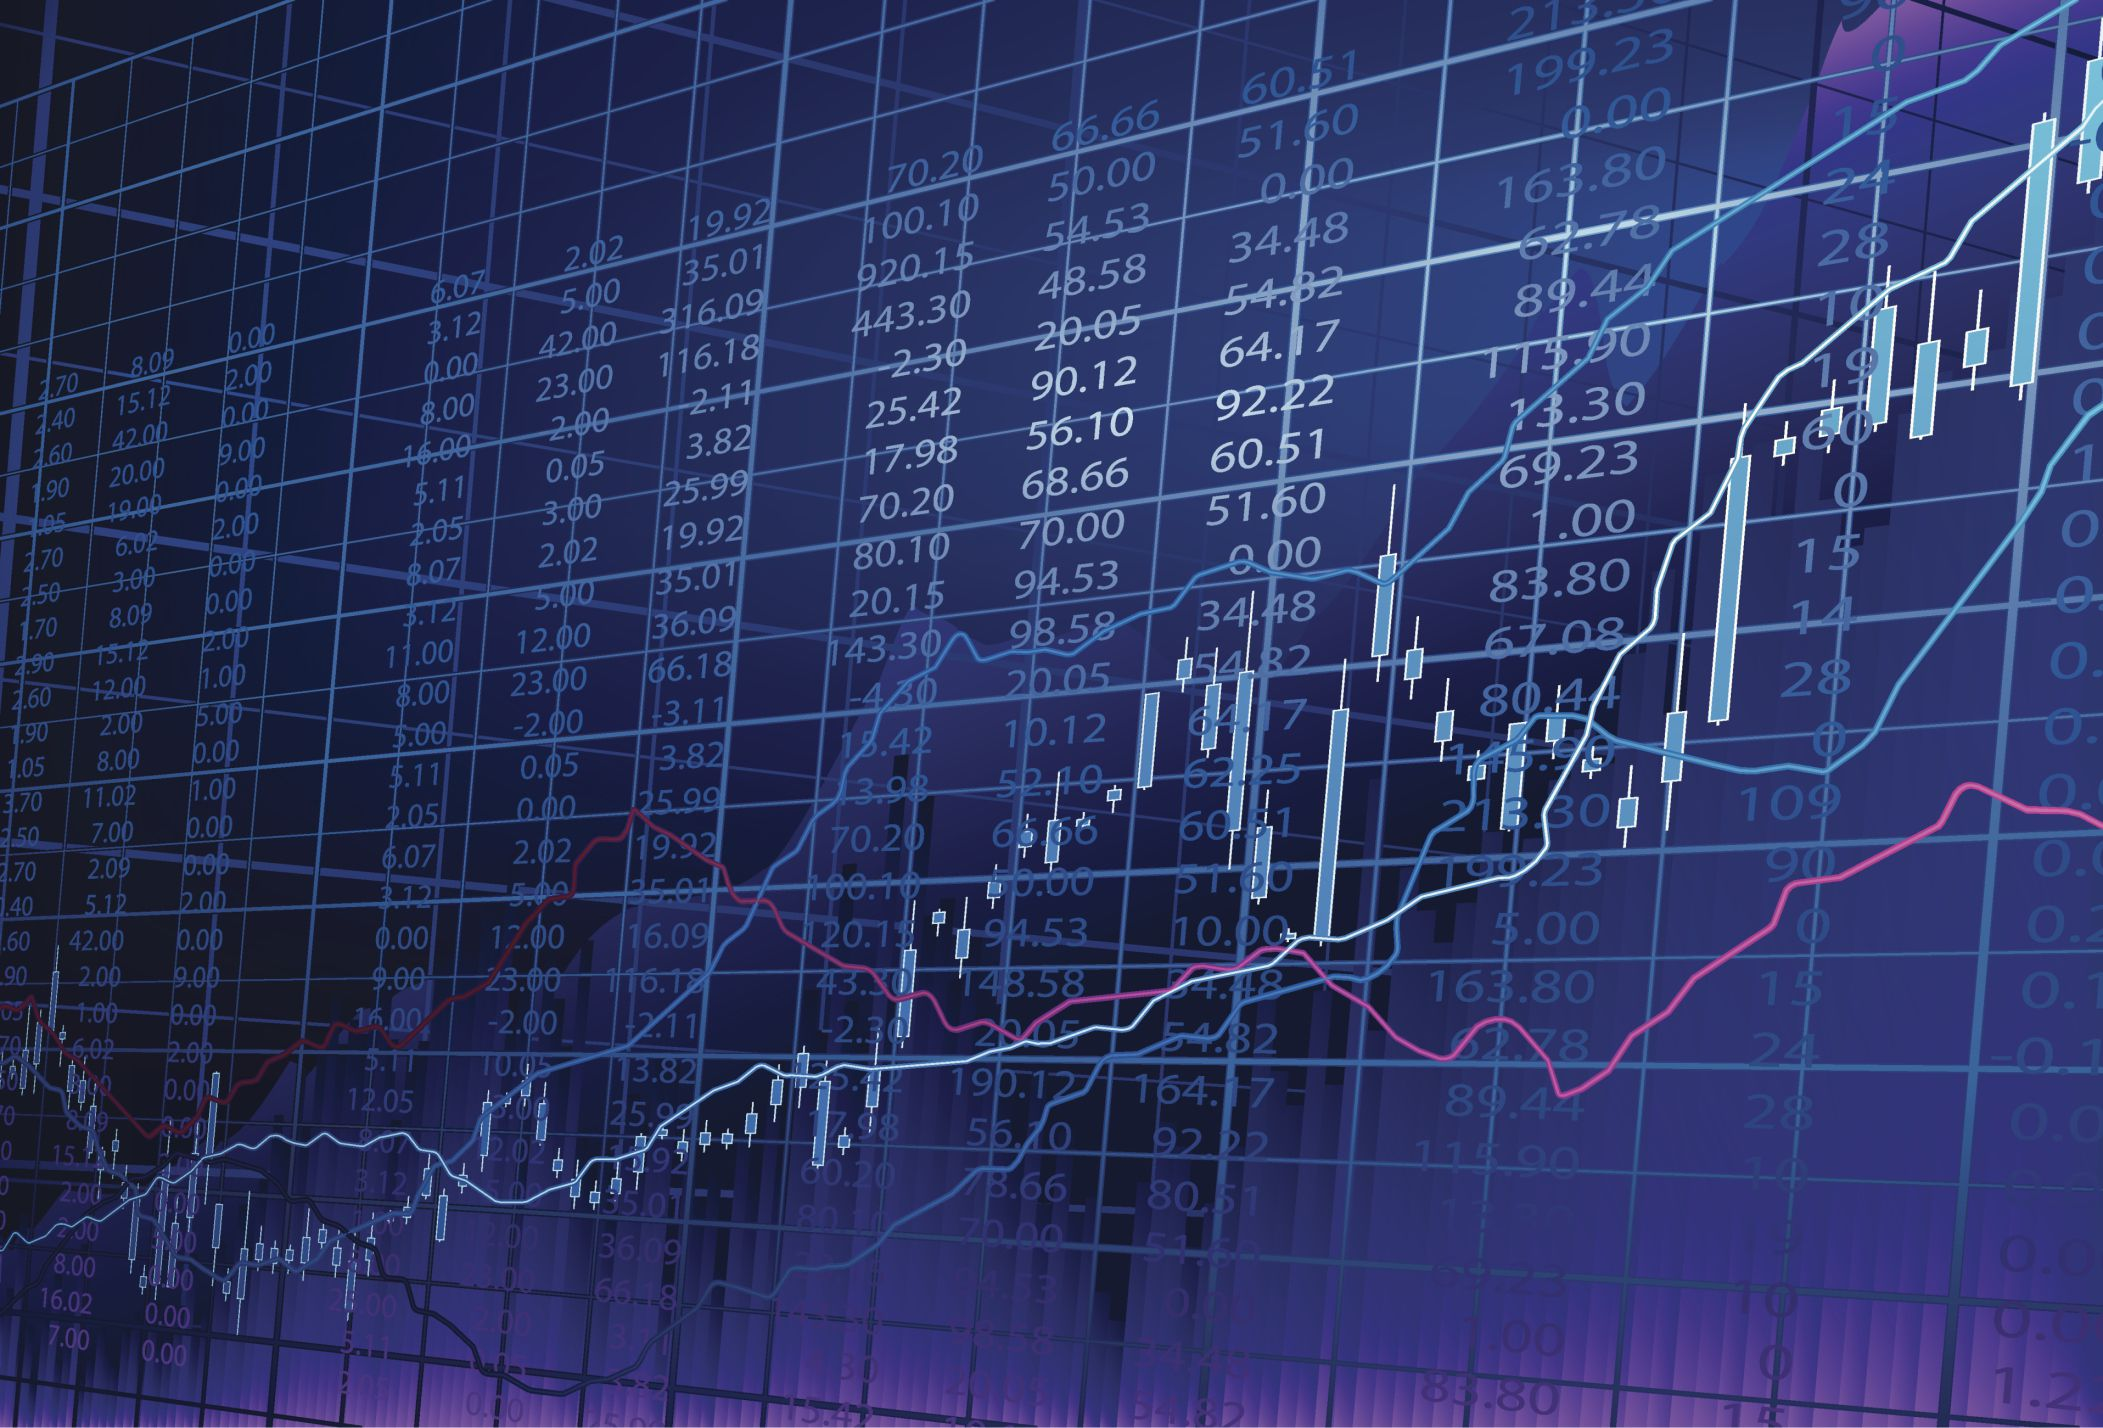 Things to know before starting with stock trading